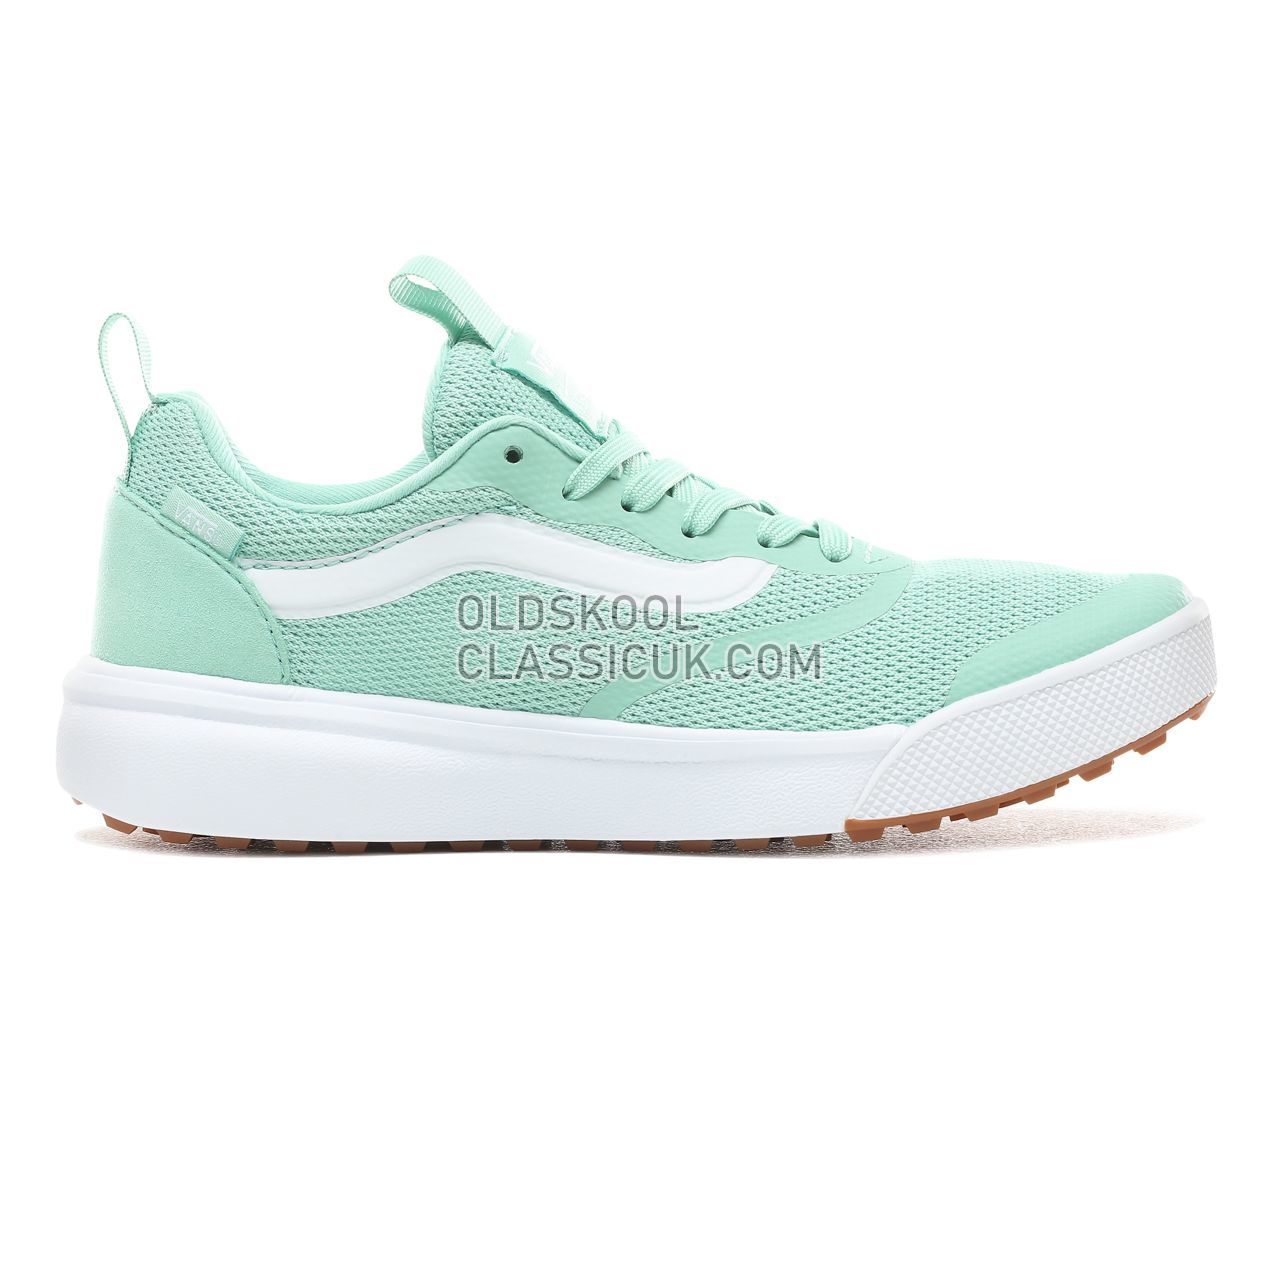 Vans Ultrarange Rapidweld Sneakers Womens Neptune Green VN0A3MVUUUT Shoes